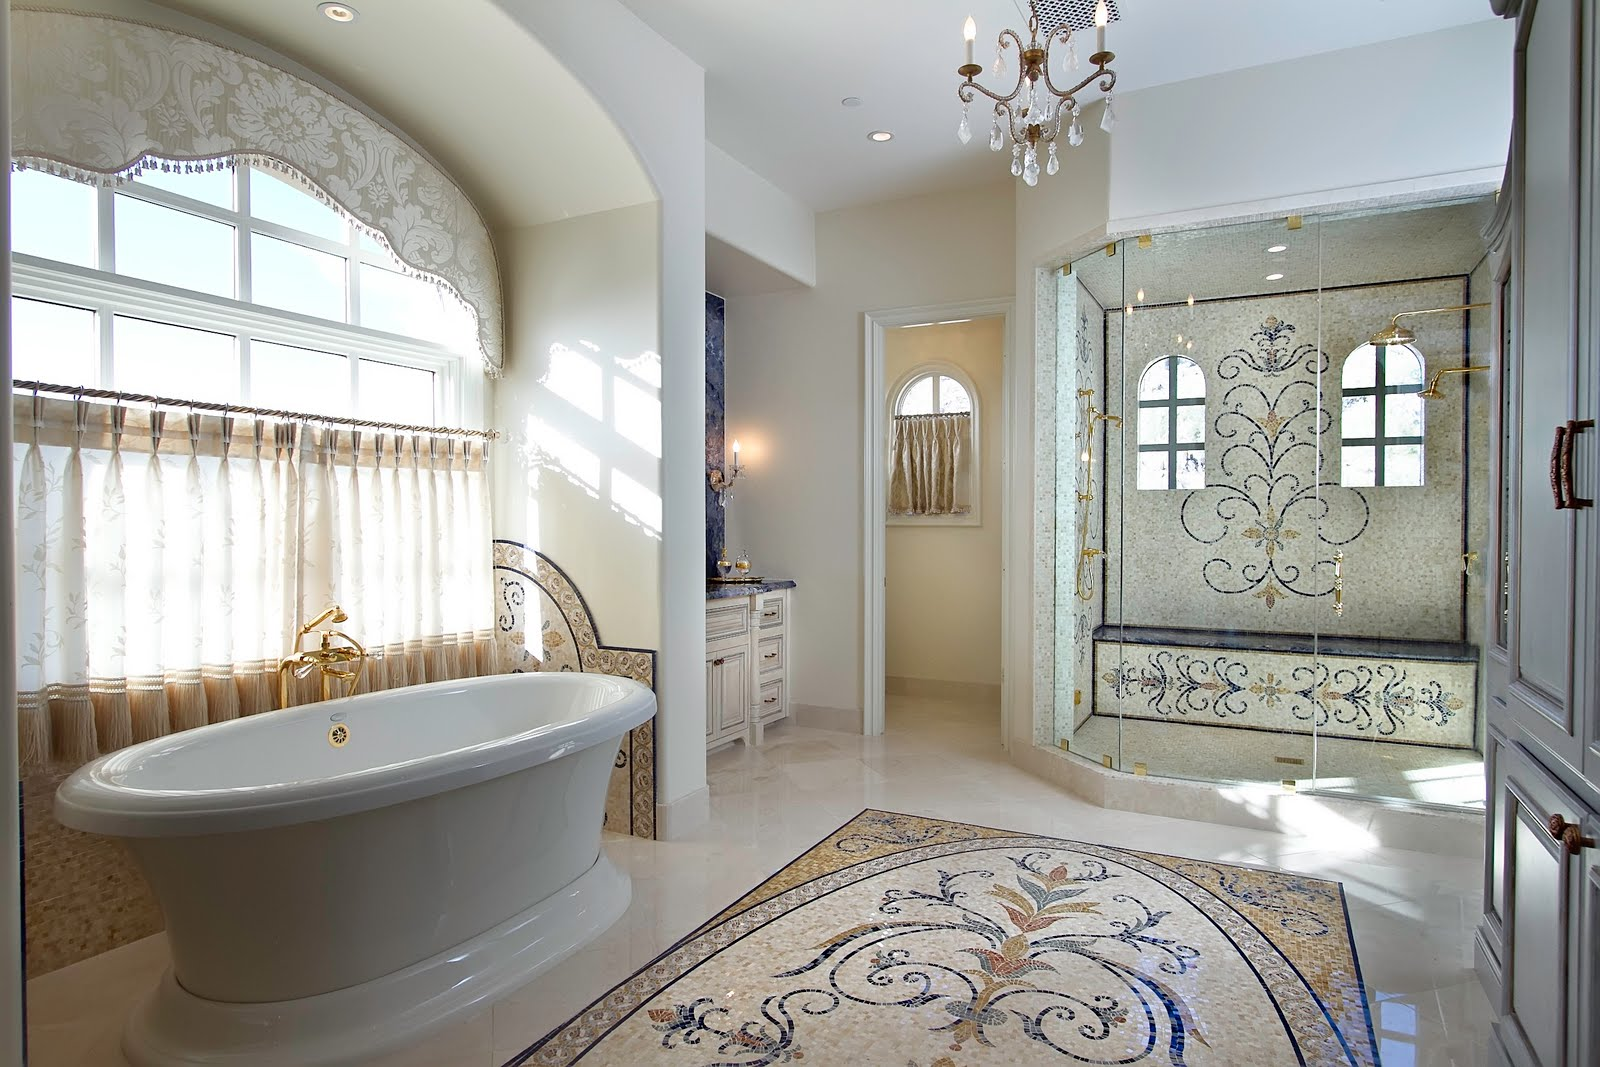 bathroom-gorgeous-image-of-bathroom-decoration-using-mosaic-medallion-bathroom-flooring-including-white-glass-crystal-bathroom-chandelier-and-cream-mosaic-medallion-high-end-bathroom-tile-interactive